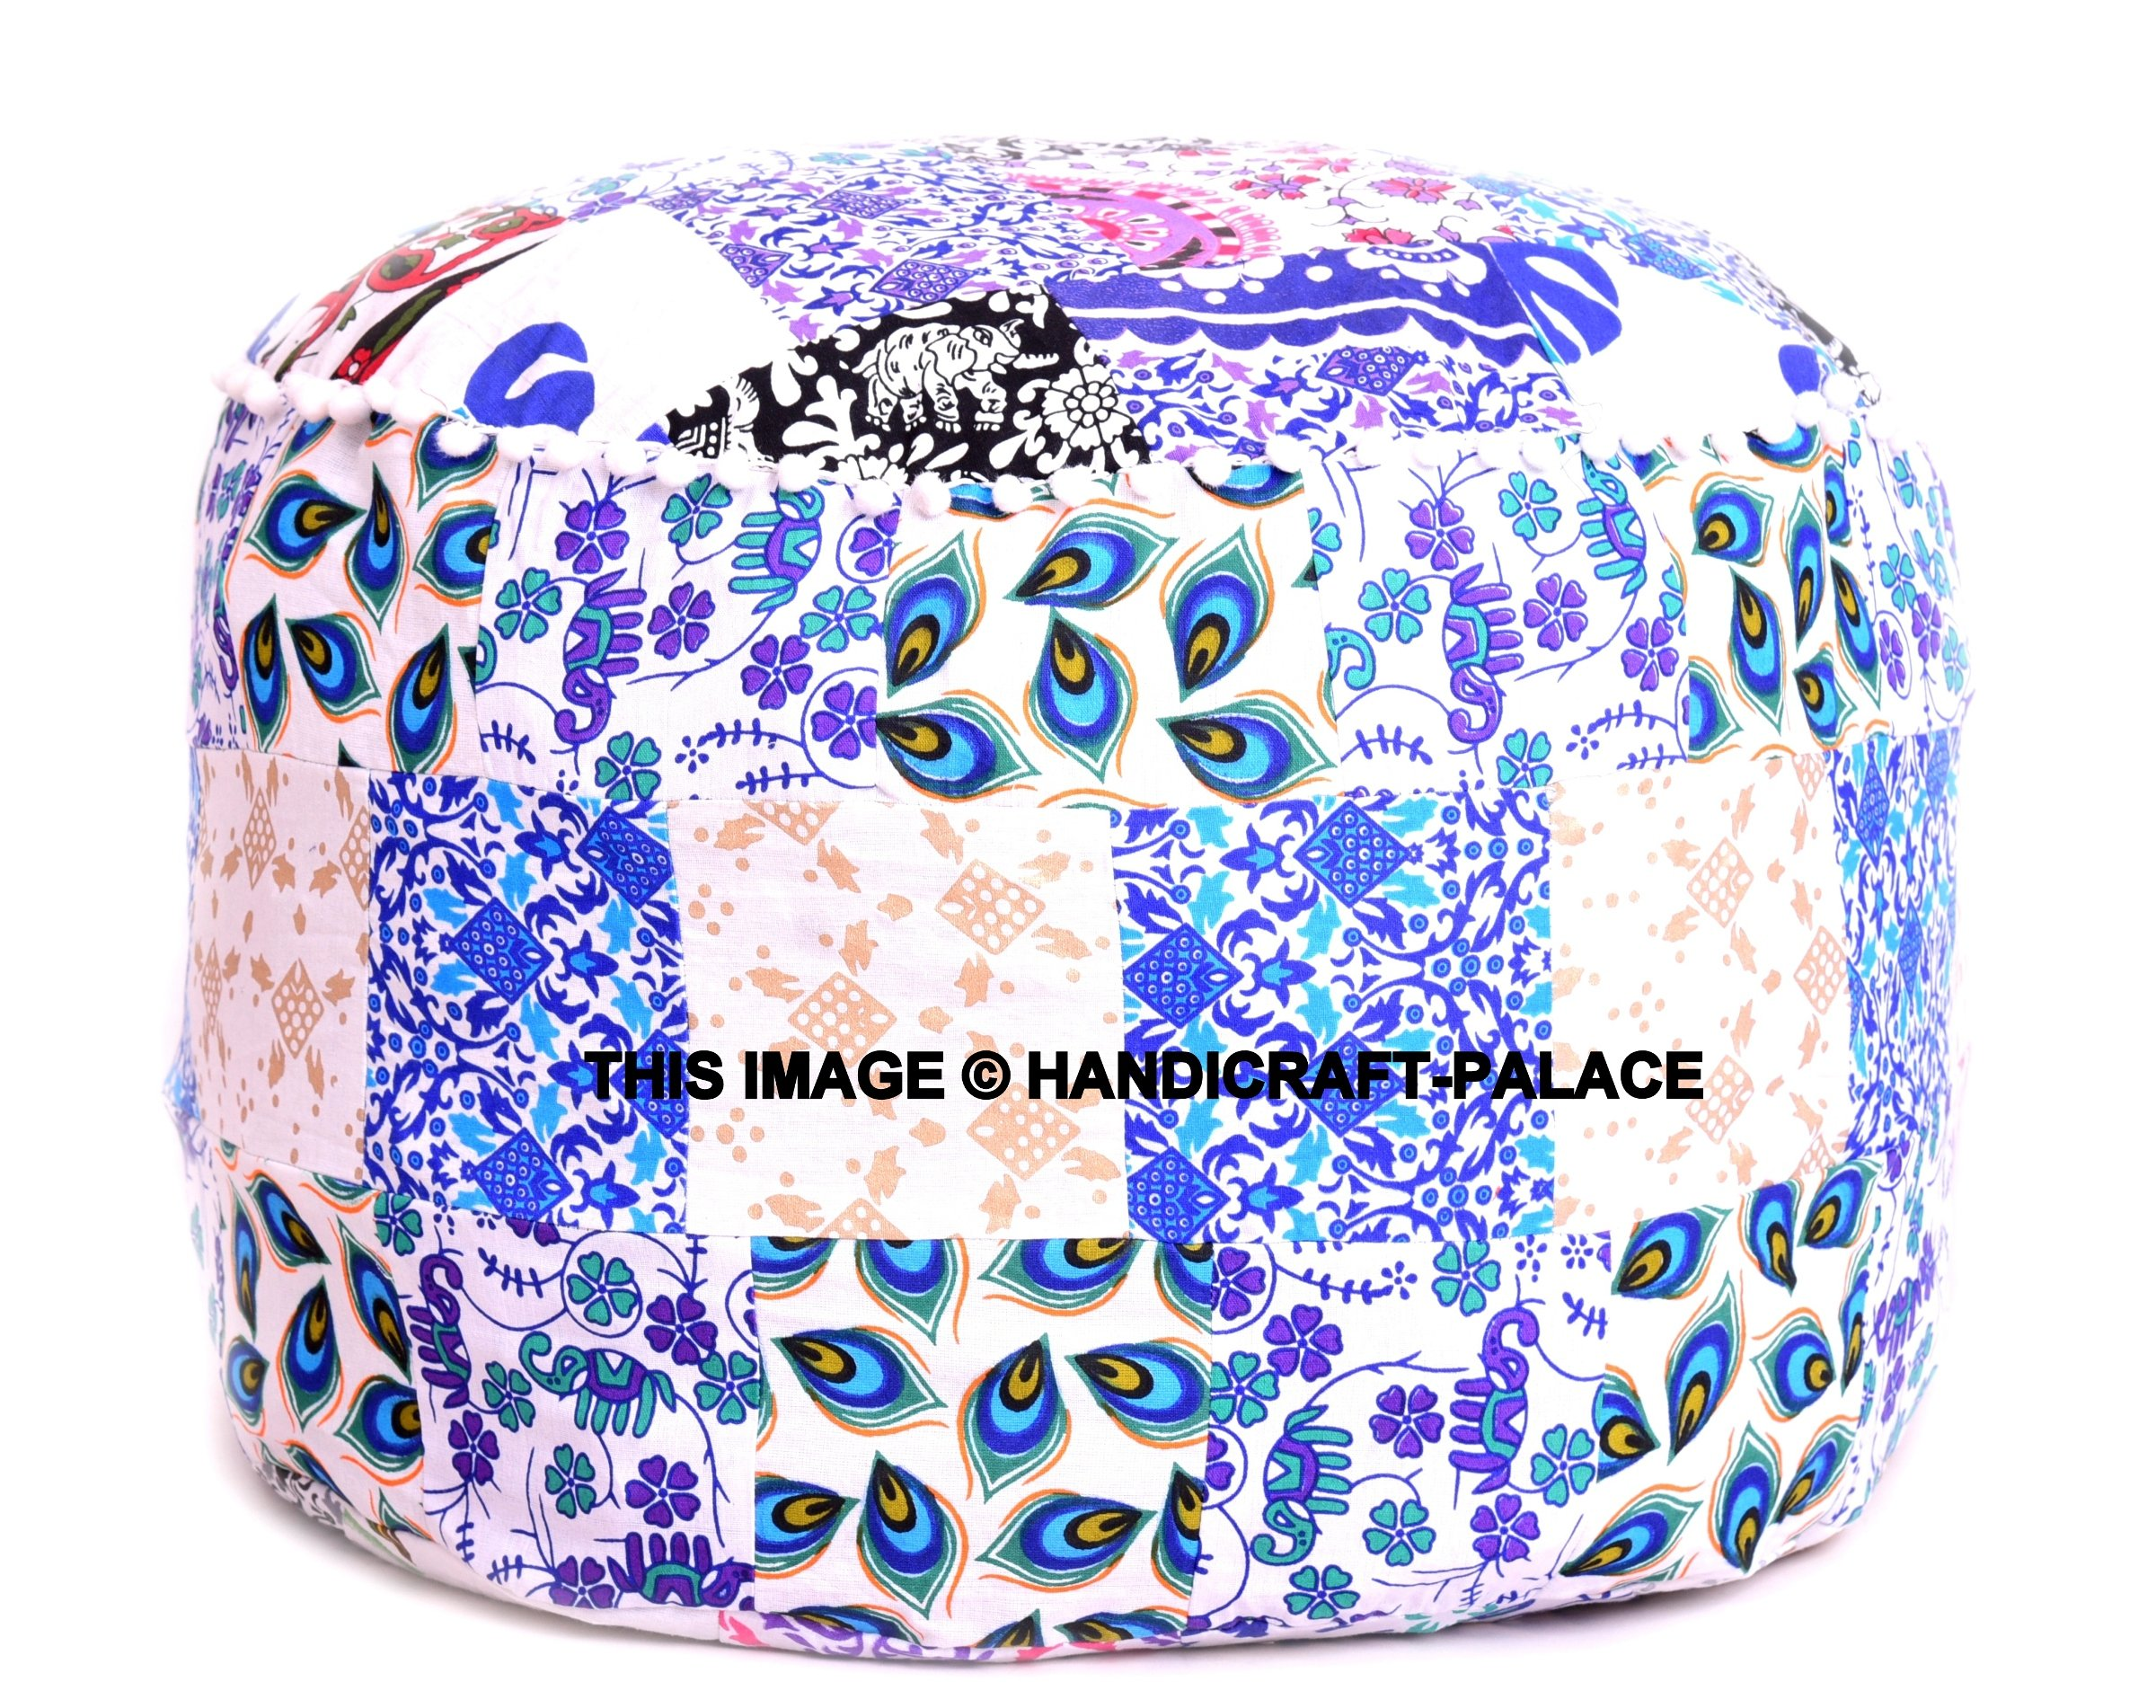 Indian Traditional Ottoman Pouf Cover Decorative Foot Stool Covers Handmade Cotton Bohemian Pouf Ottomans Round Comfortable PatchWork Floor Cushion 24'' X 14'' inch By Handicraft-Palace